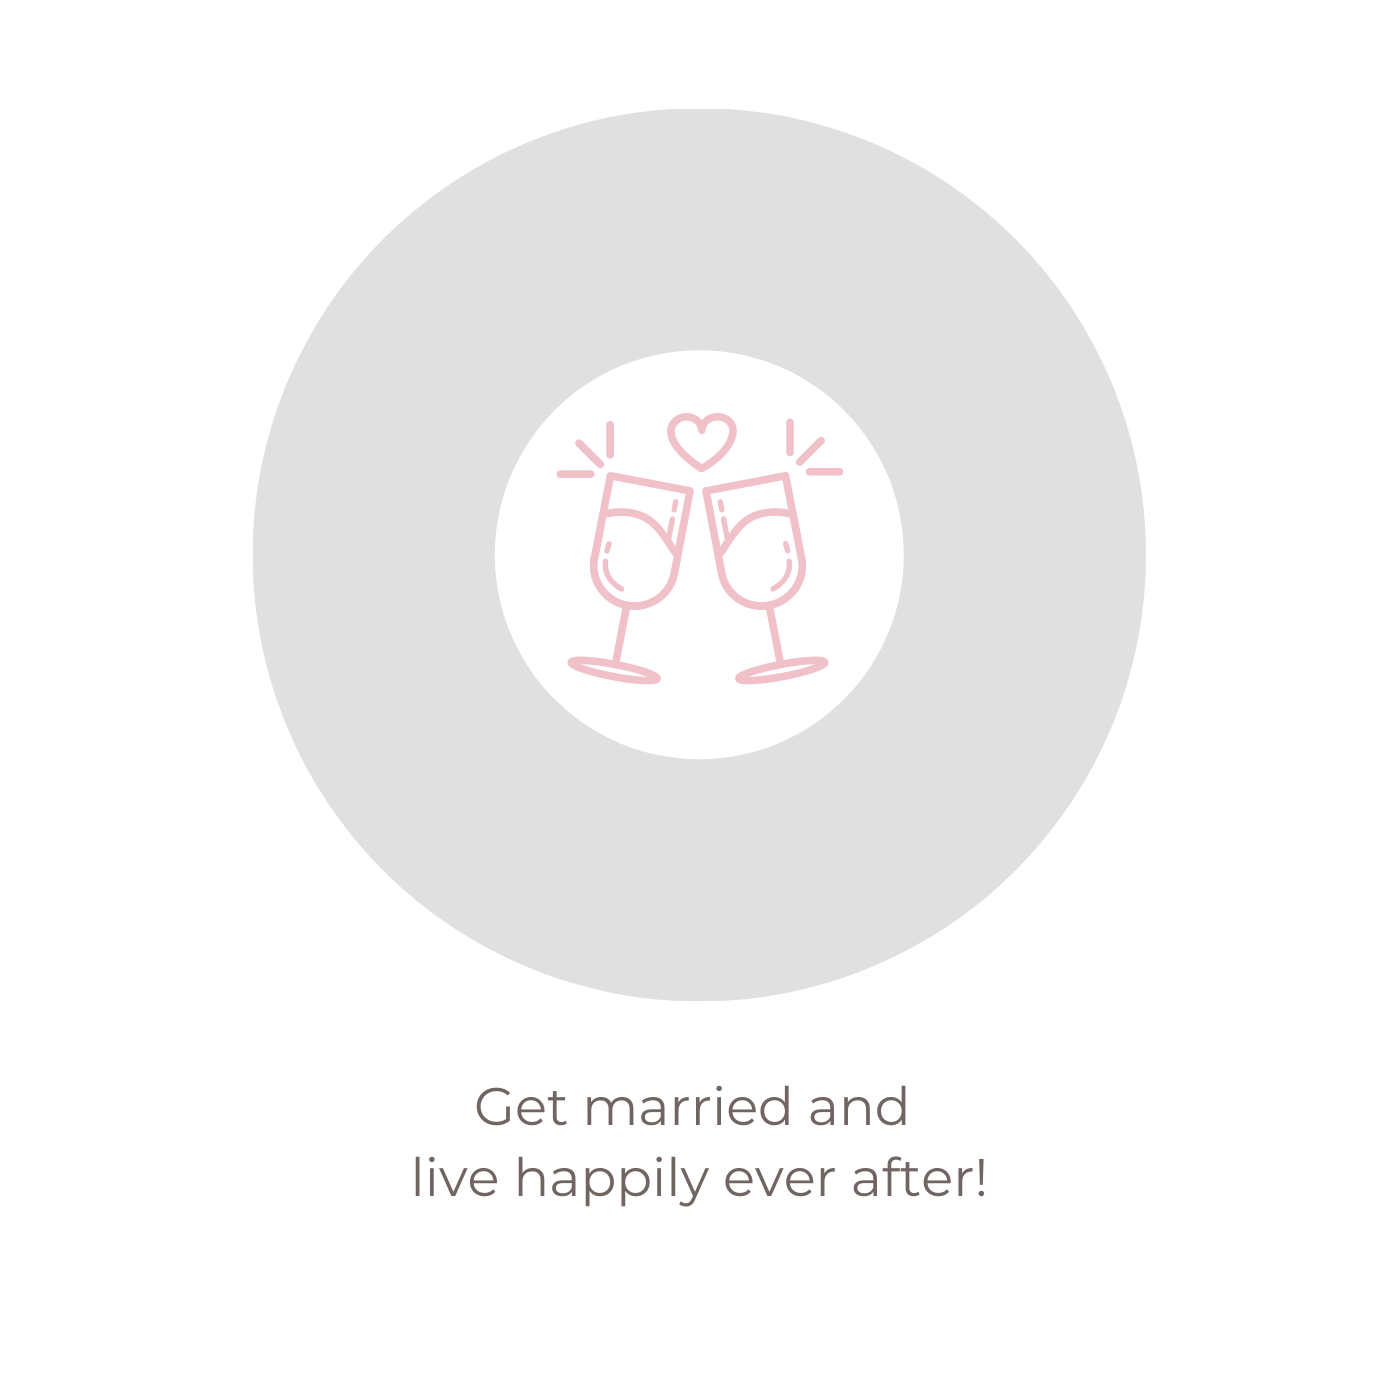 Get married and live happily ever after!